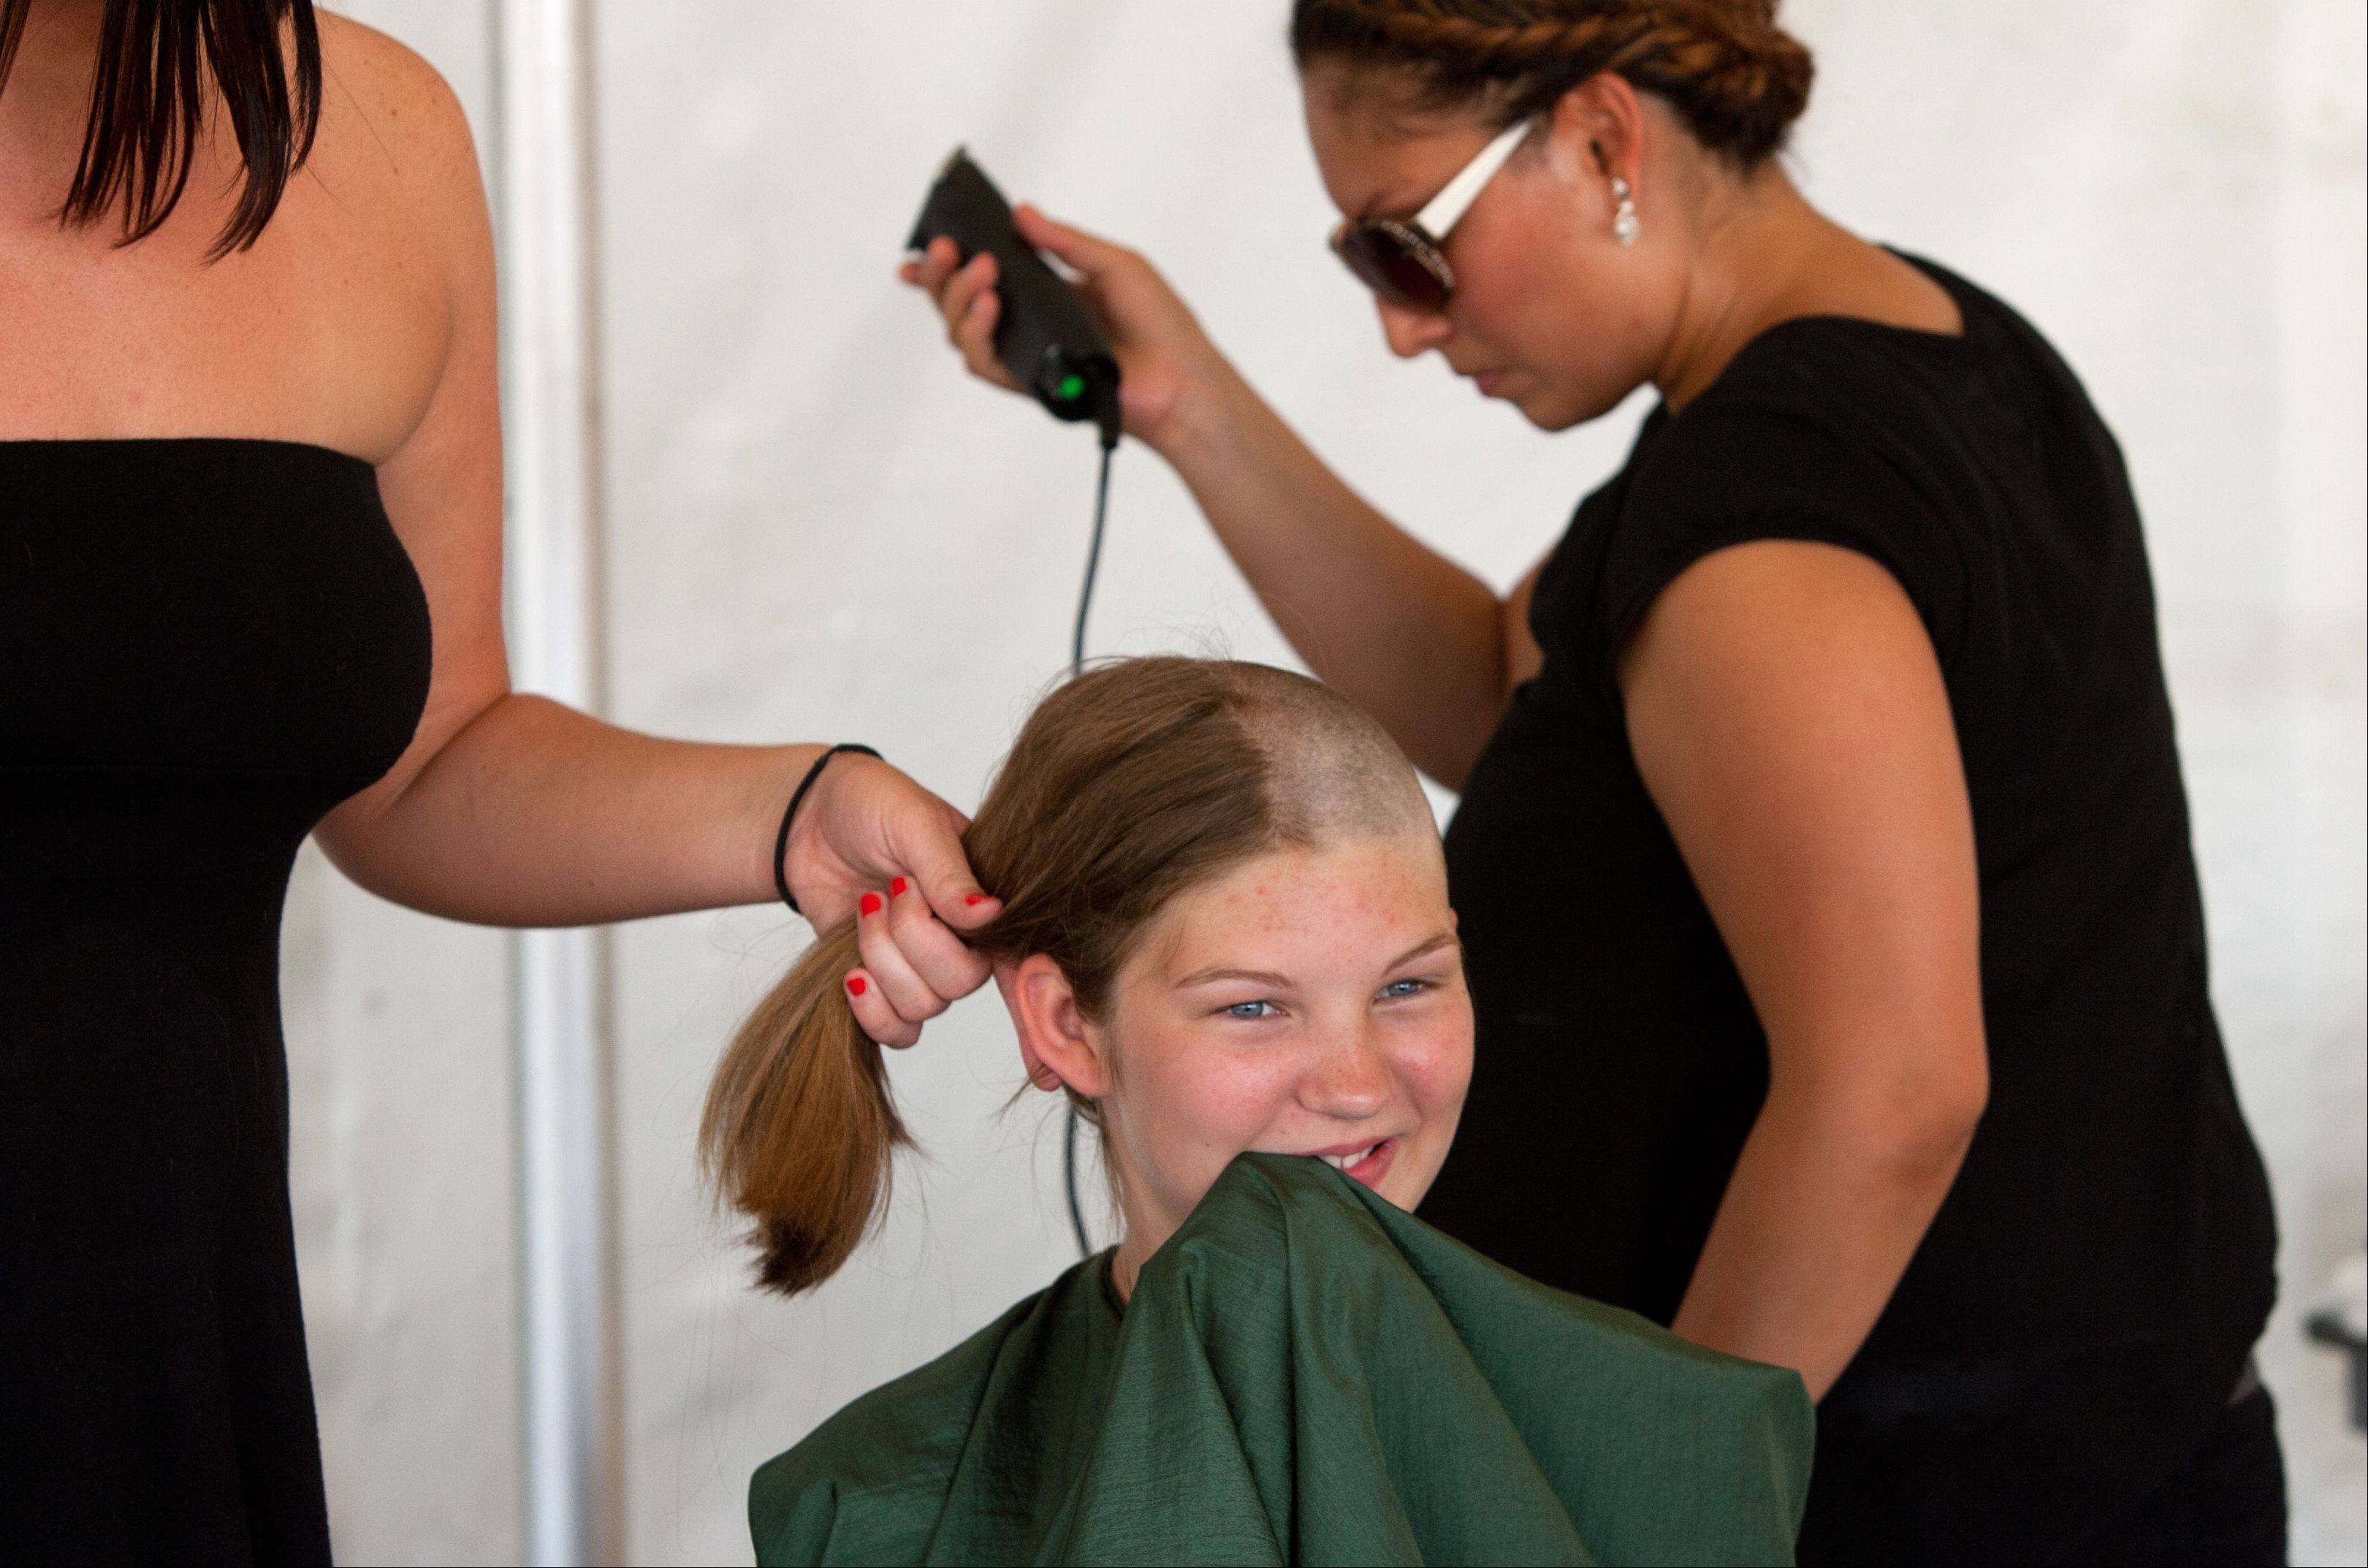 Jessica Nichols, 11, of Downers Grove, gets her head shaved for a donation to the St. Baldrick's Foundation Saturday at the Taste of Lombard courtesy of Cristy Vazquez of Paul Mitchell, The School in Chicago.